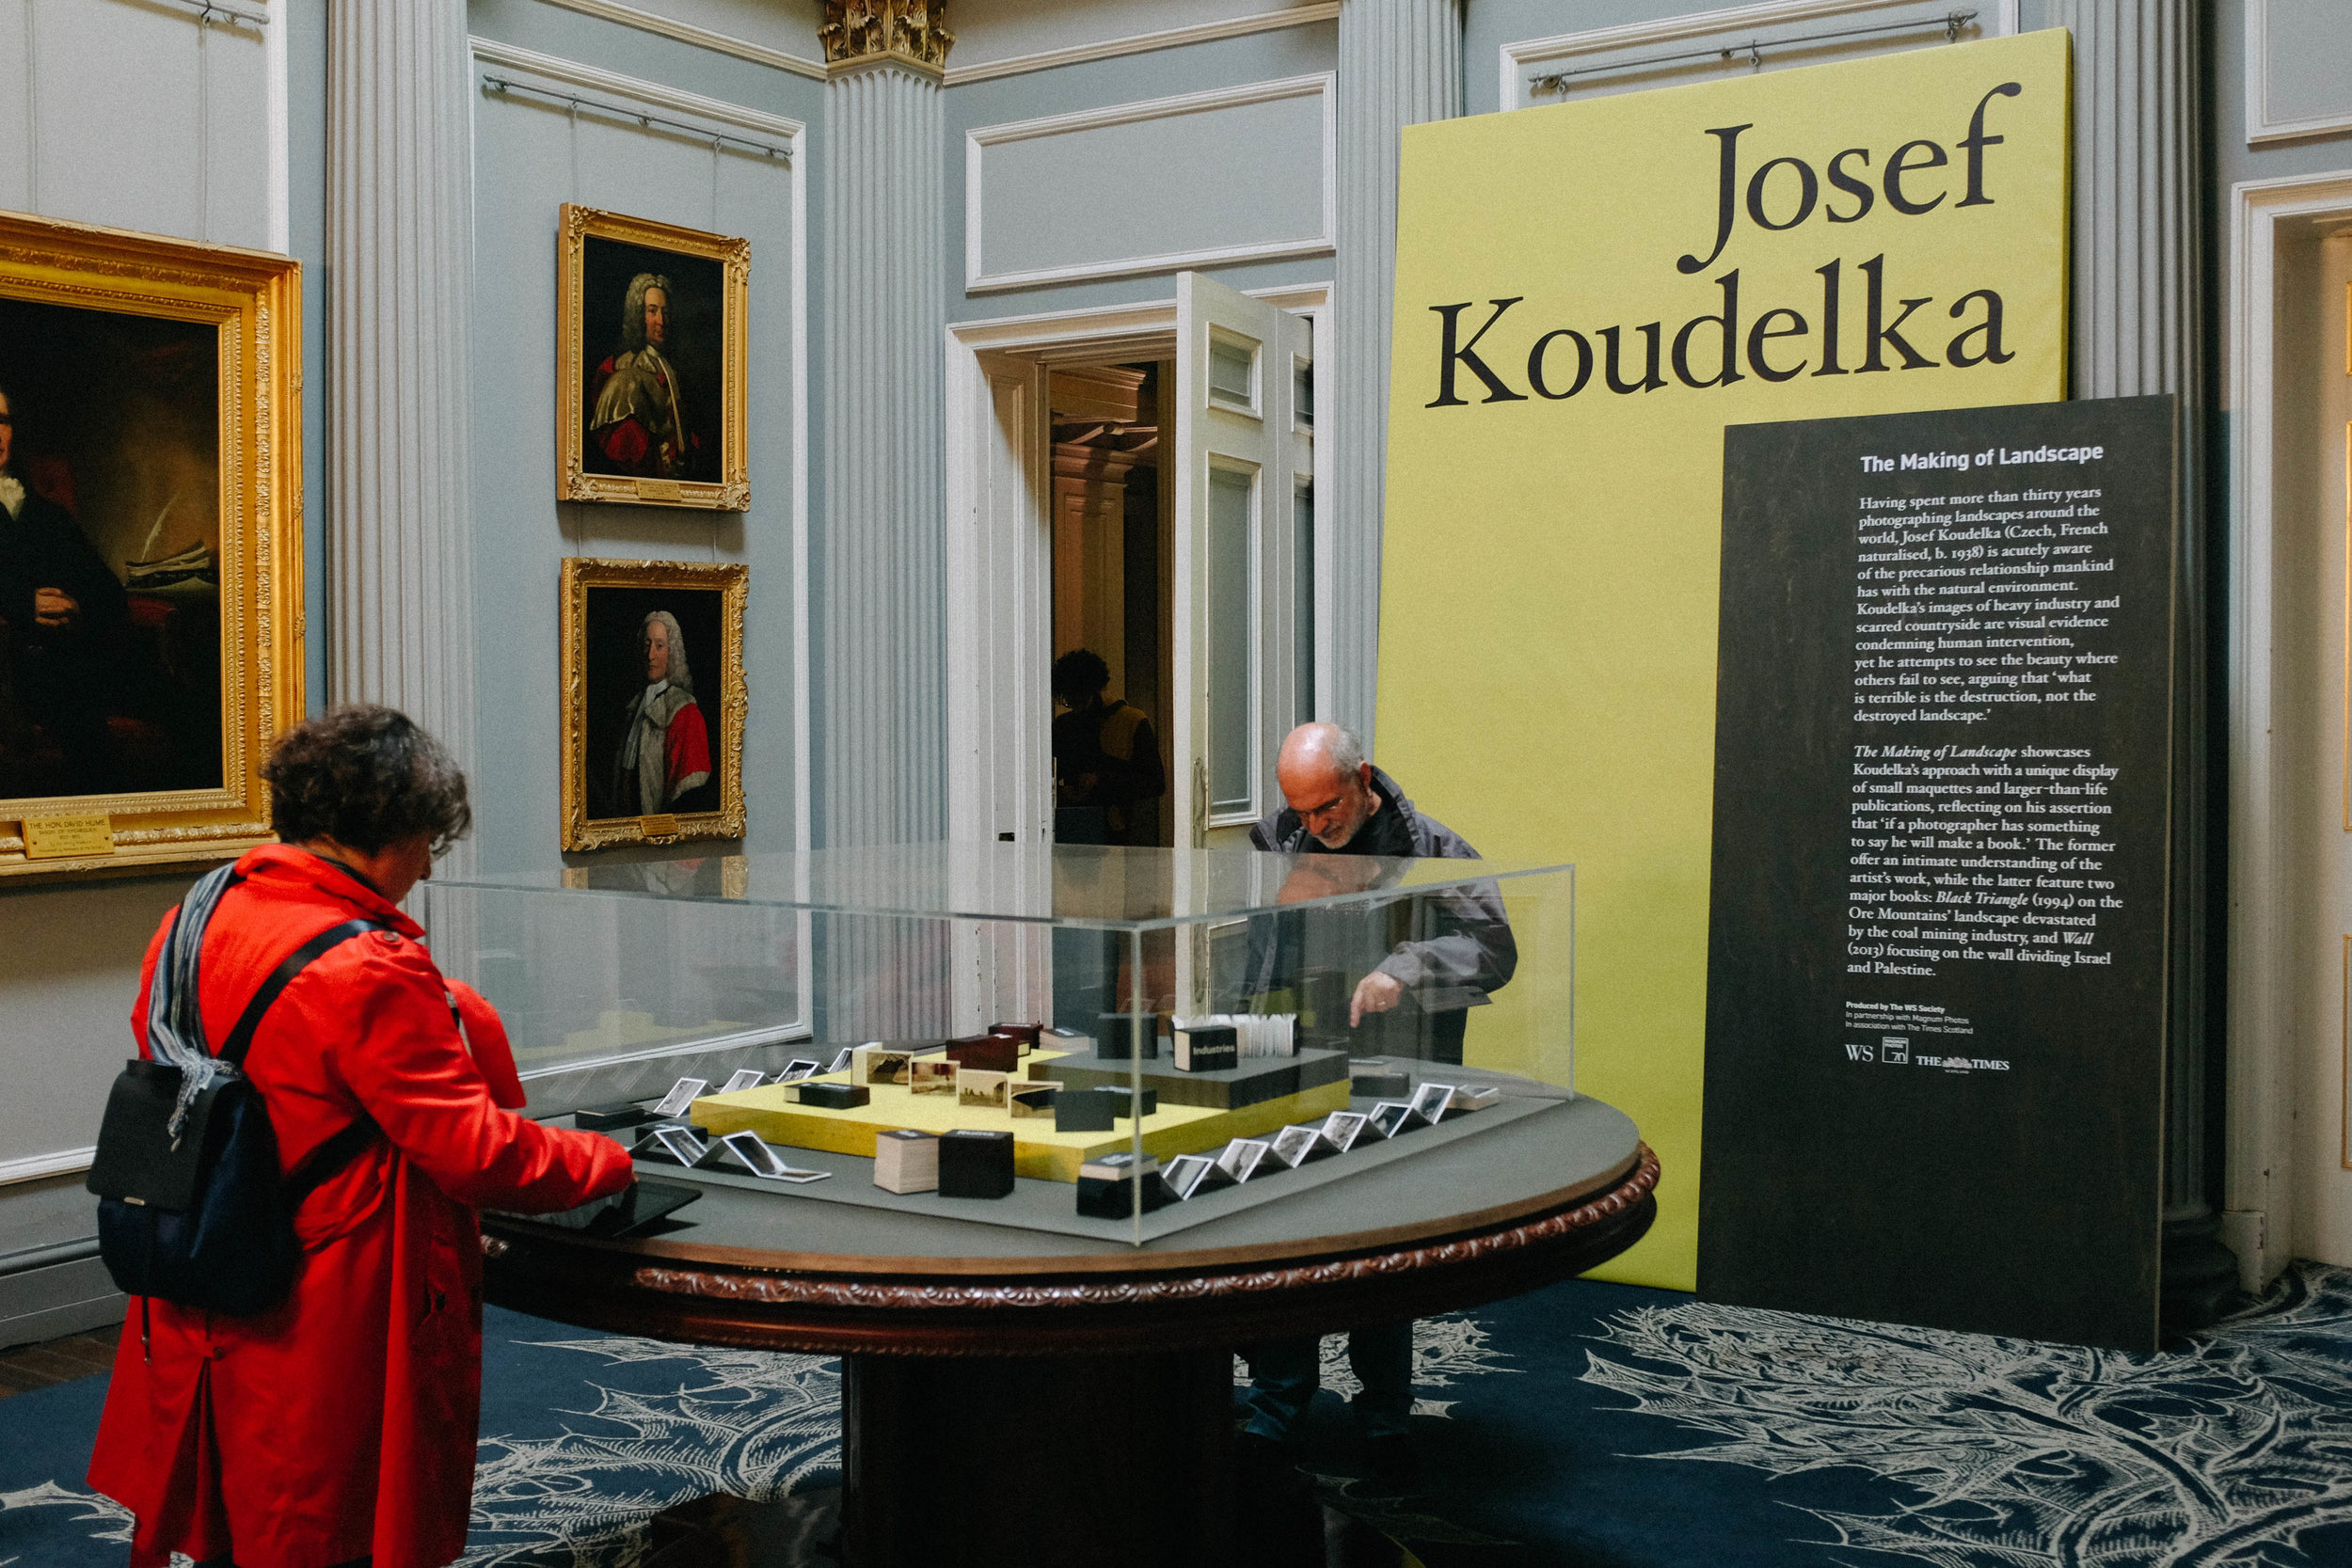 Josef Koudelka Exhibition